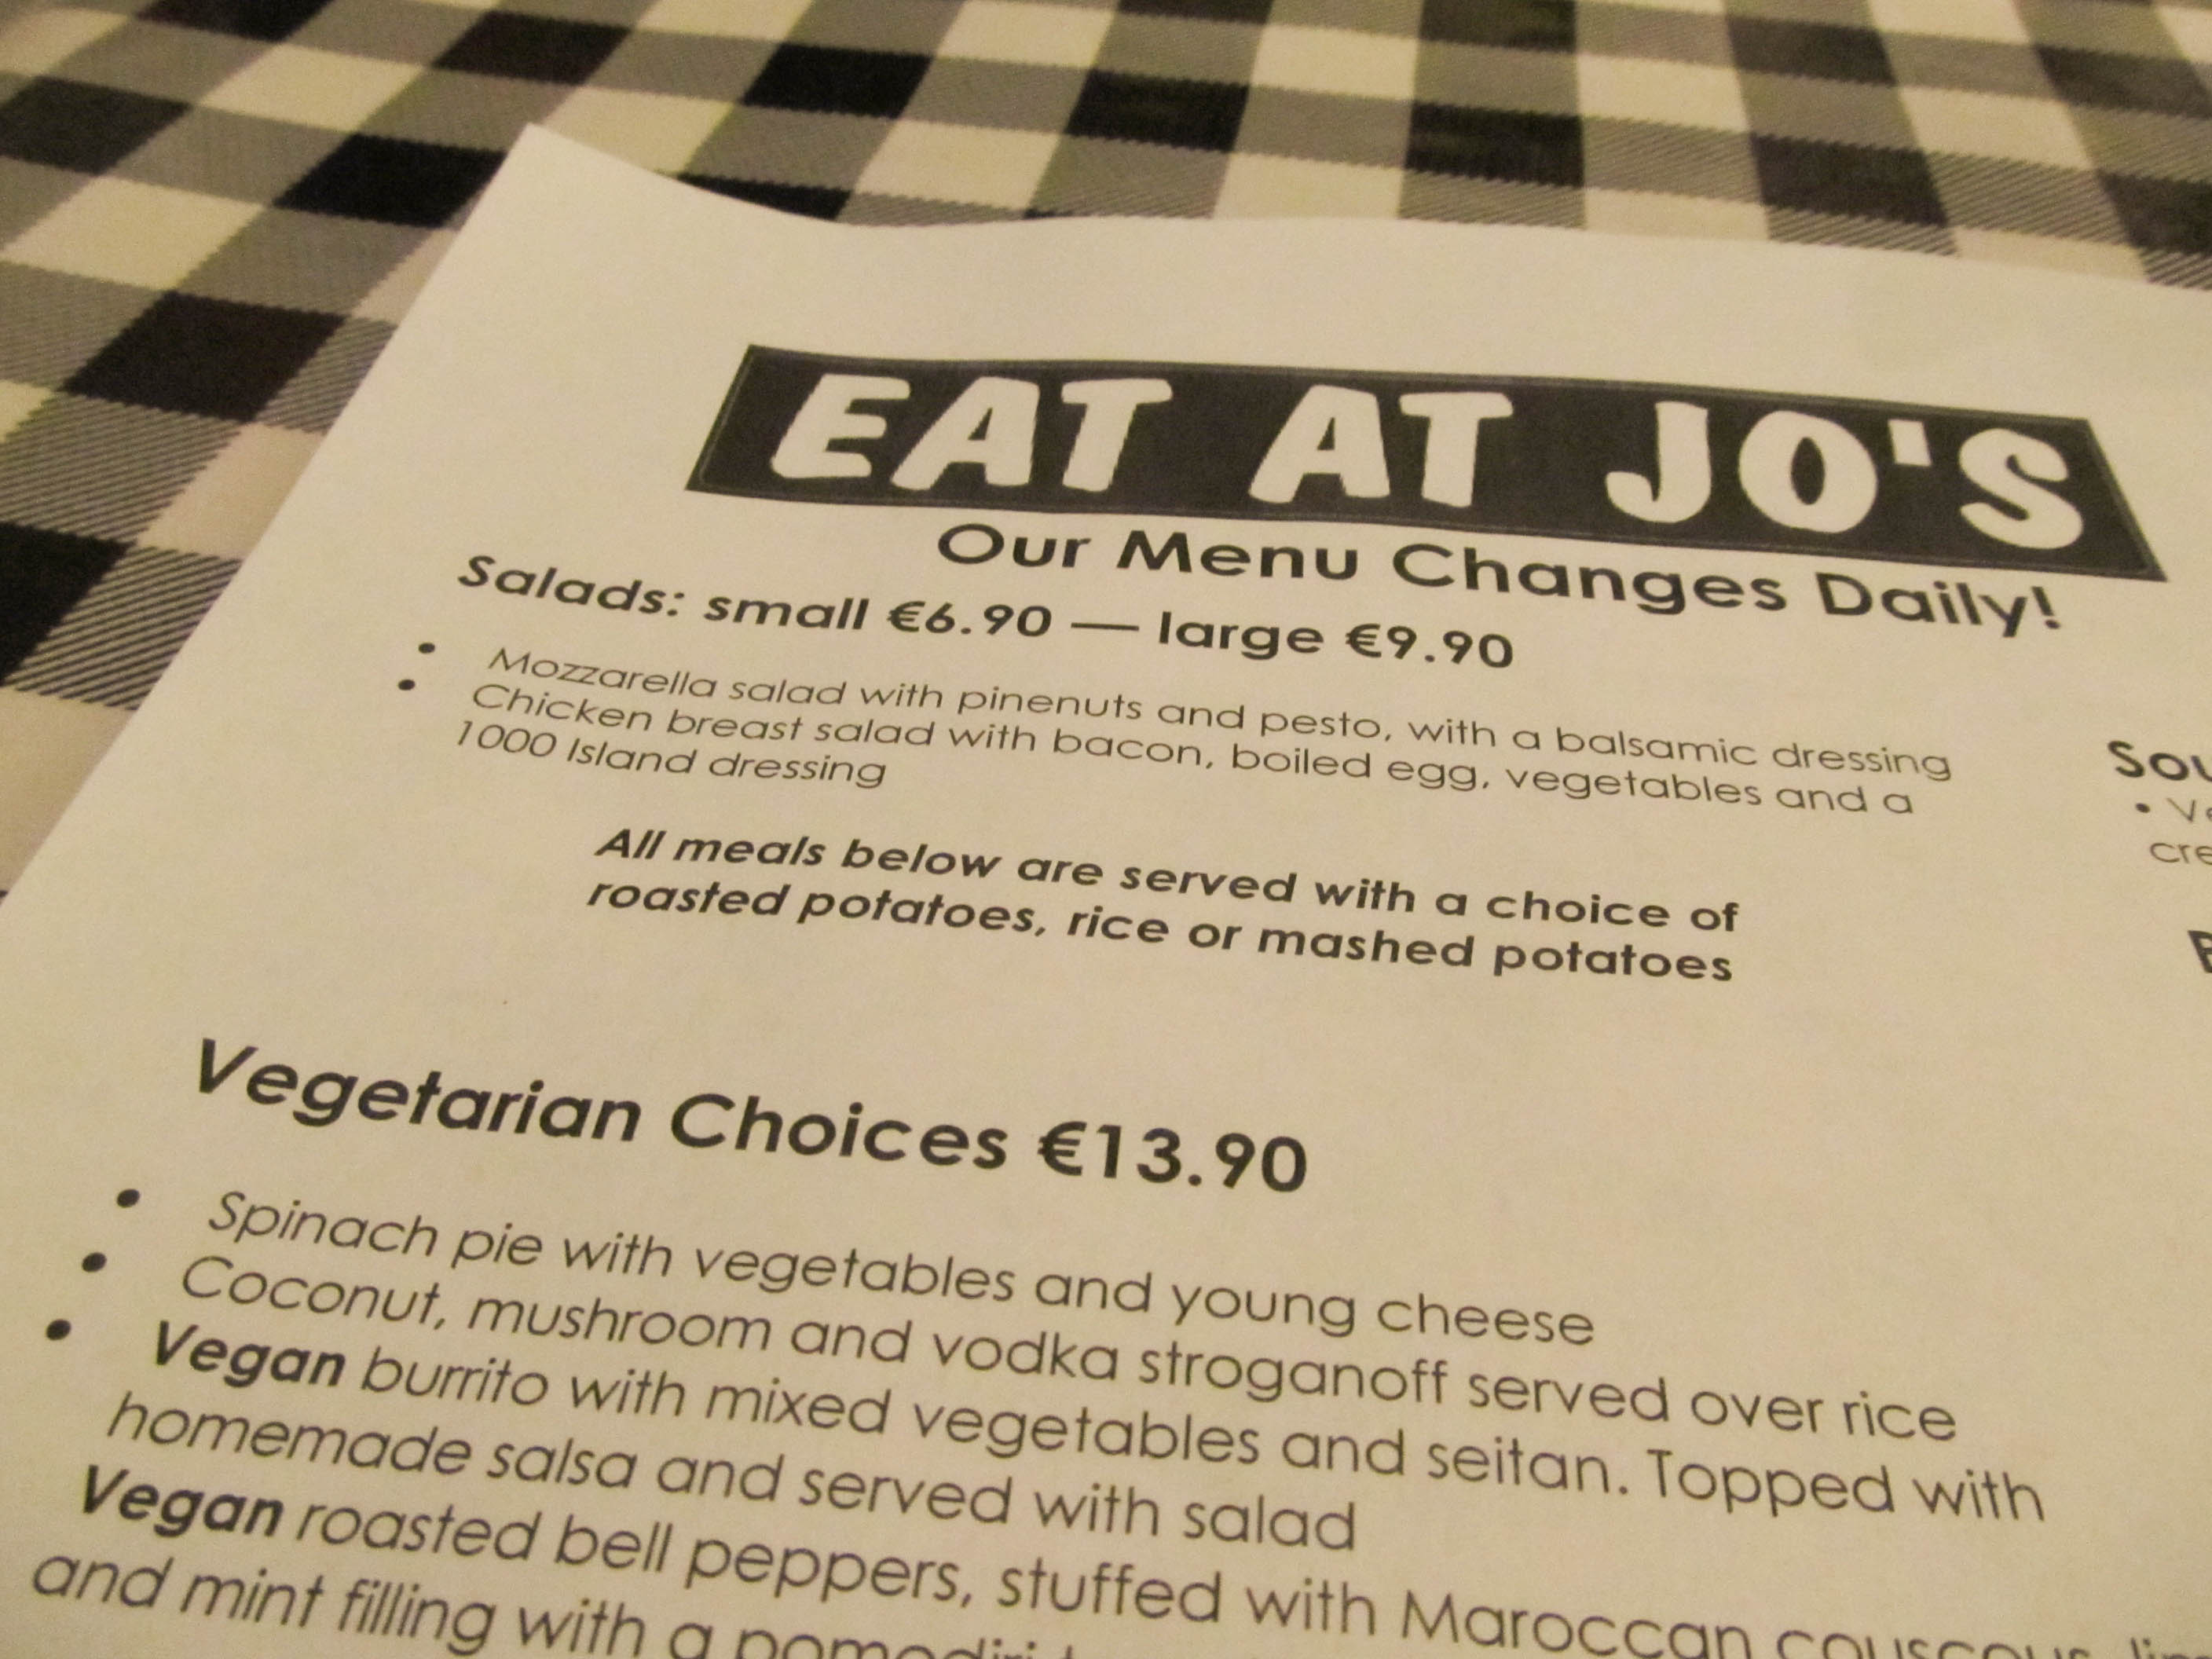 eat at jo's vegan